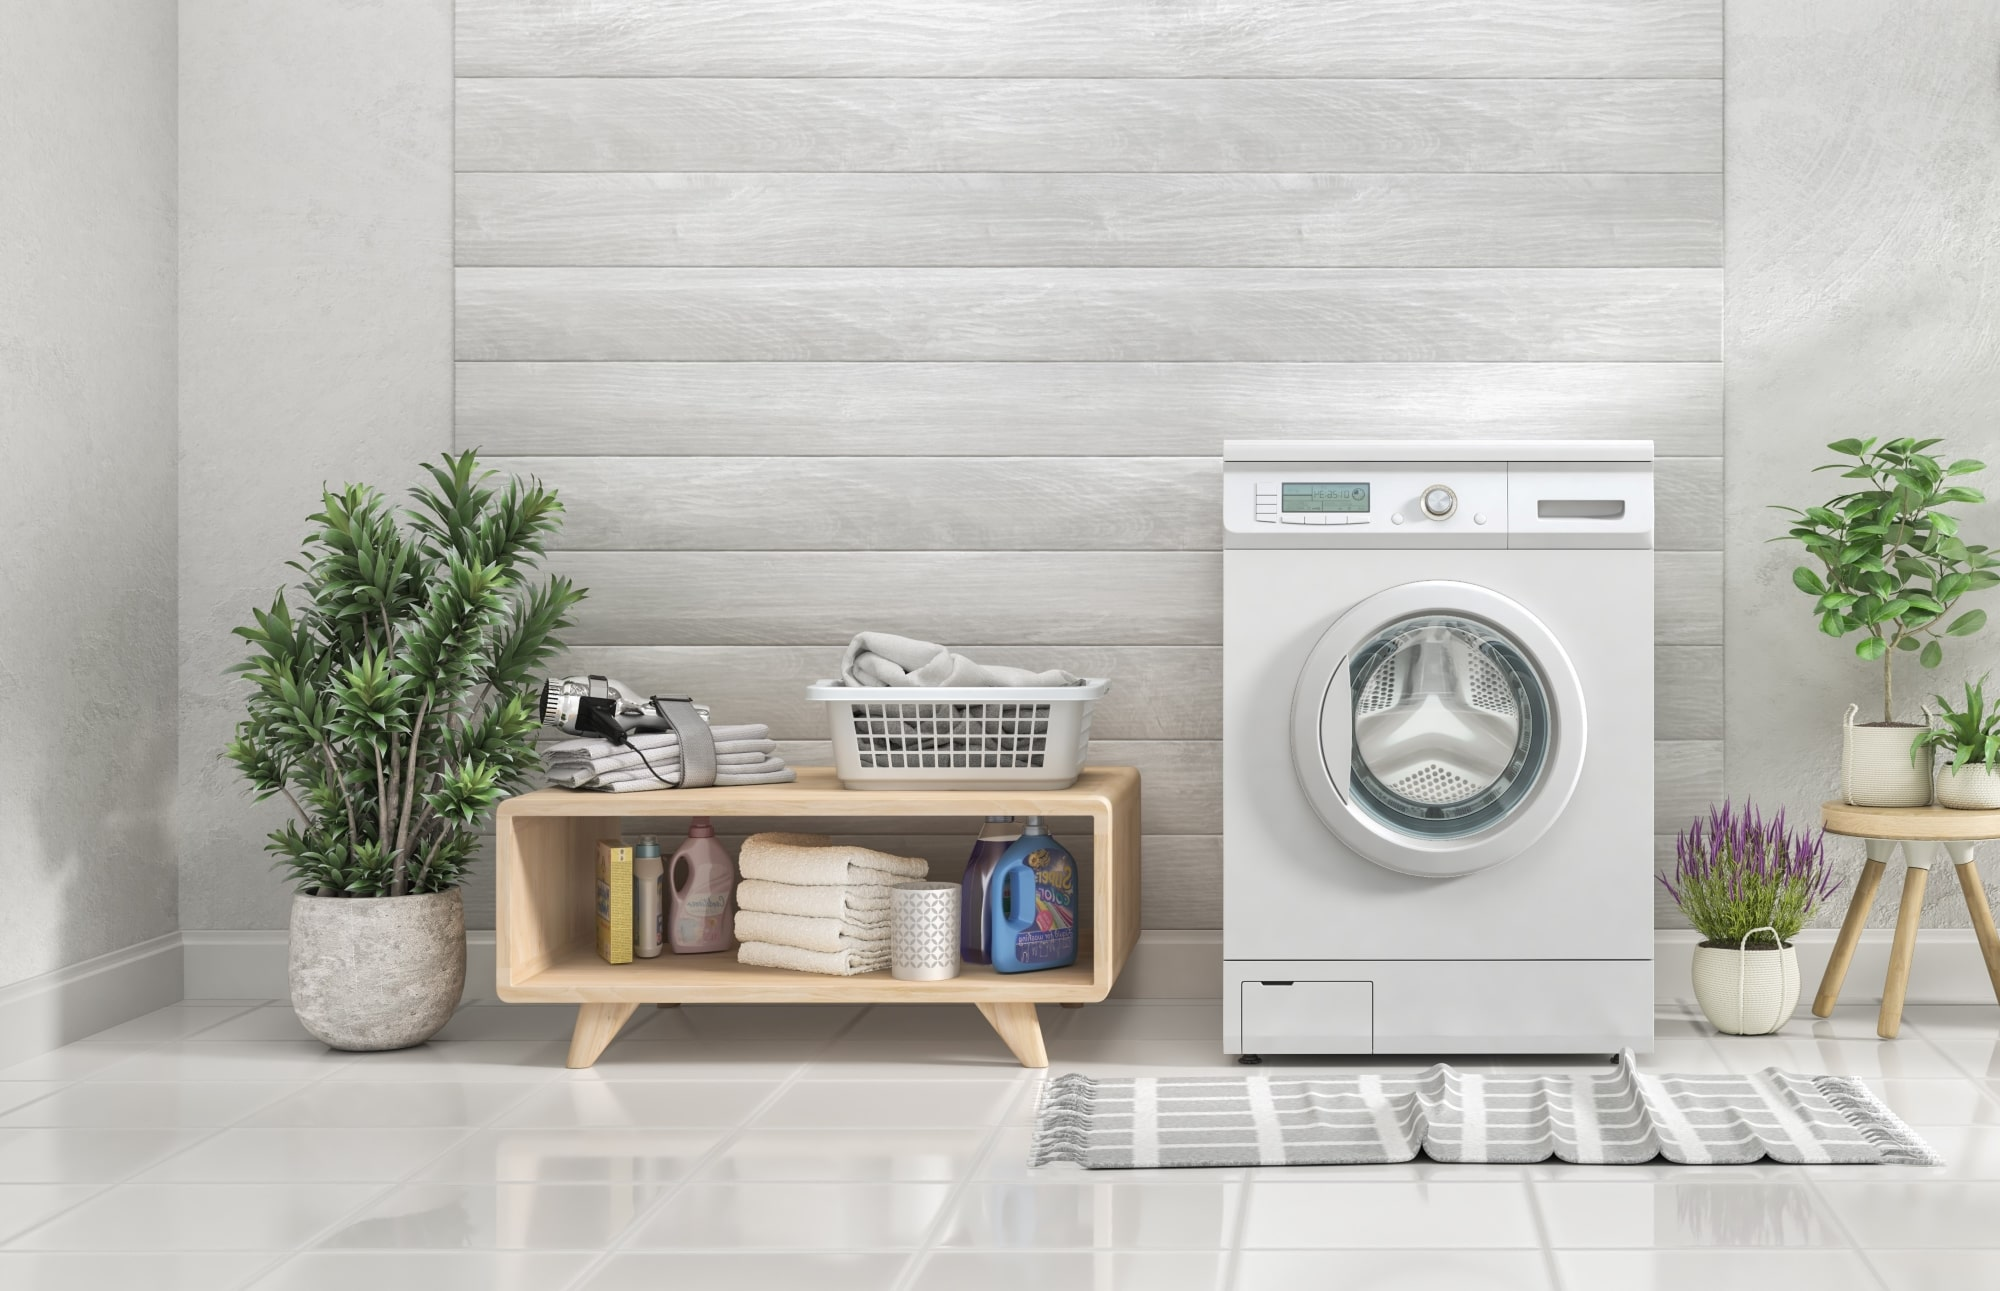 Laundry & Dry cleaning in Birmingham – Cheshire | The Laundry Cleaning center